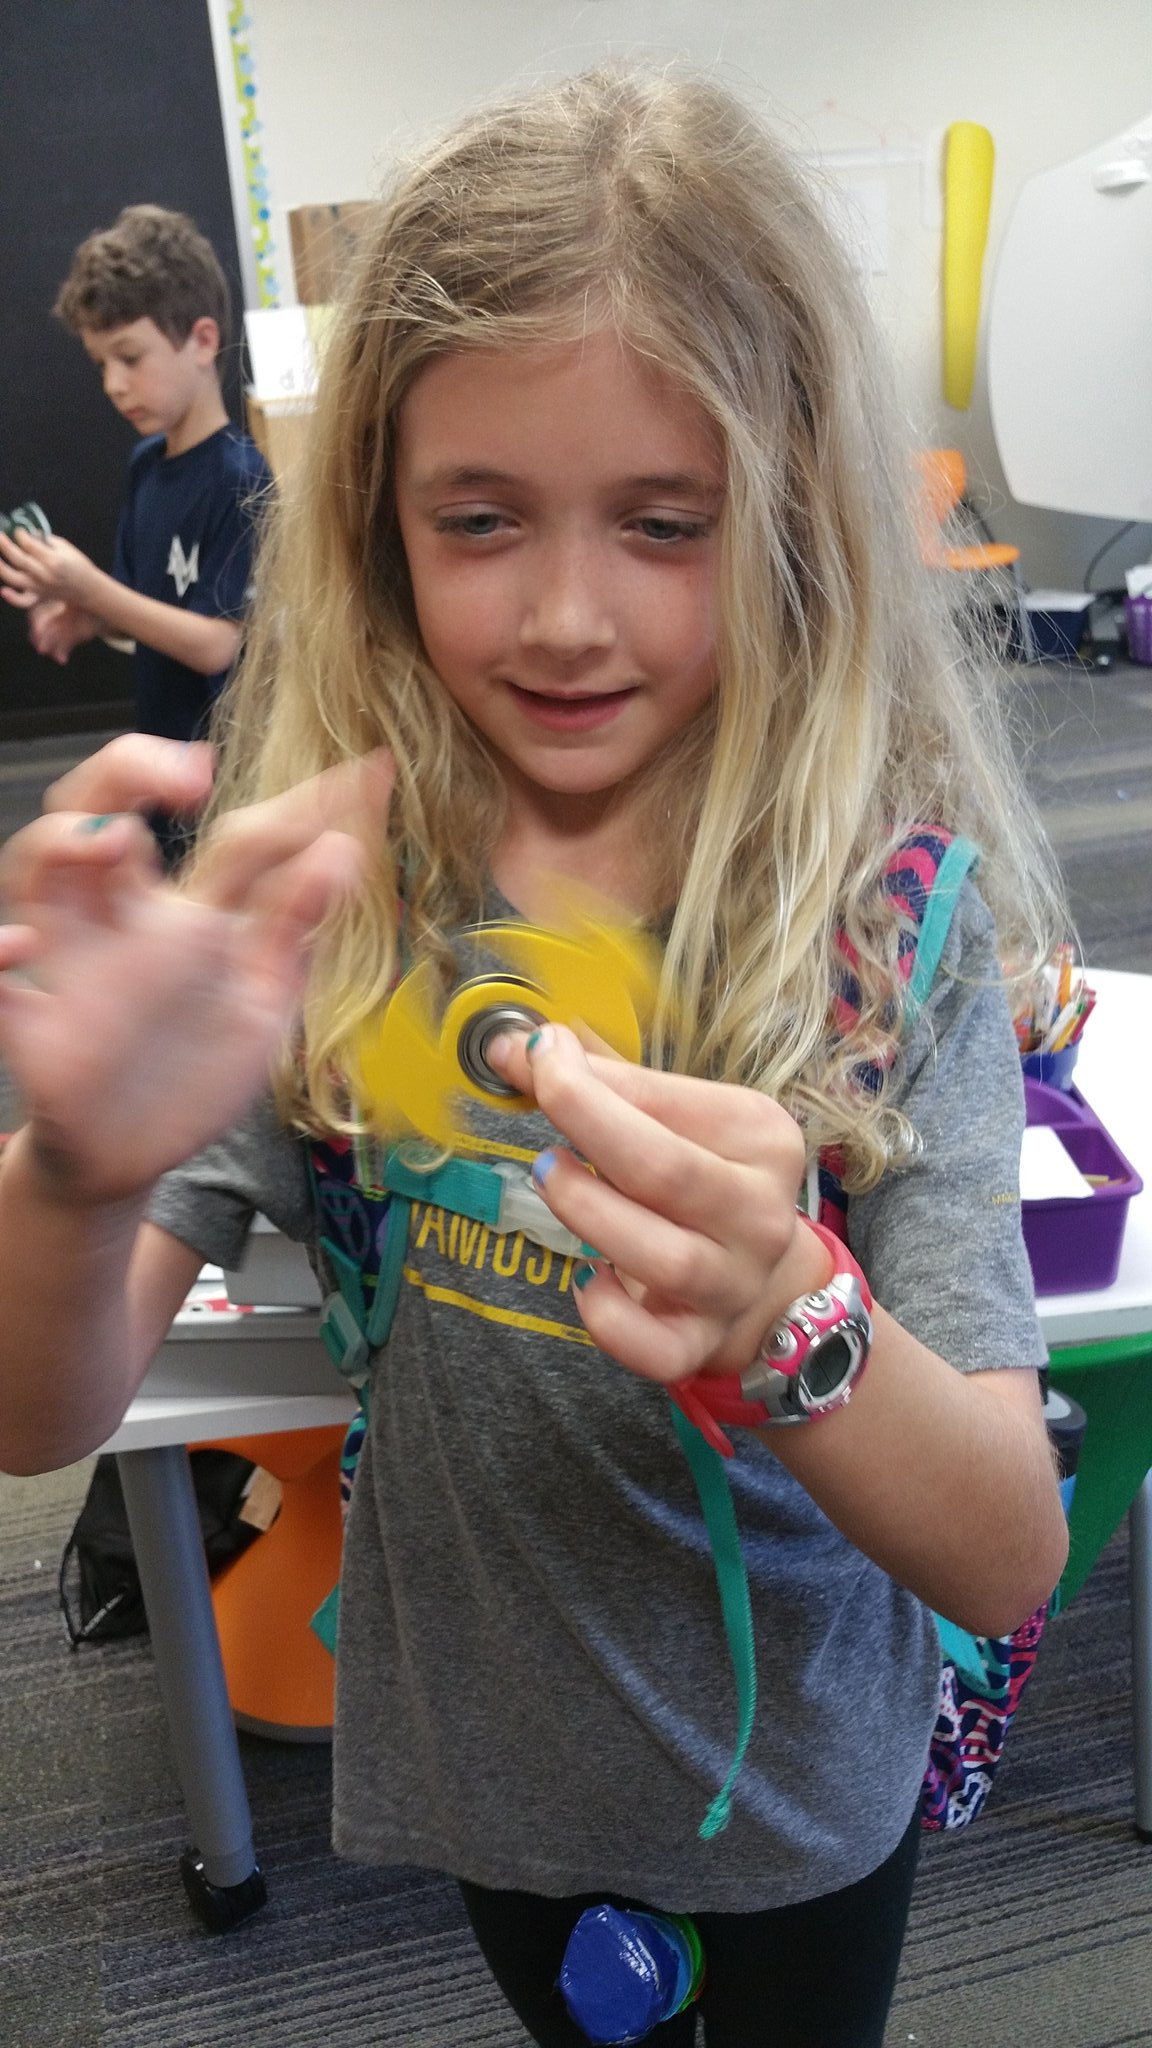 """Now I don't have to fidget with my pencil anymore!"" #kidquote Enjoying her custom designed spinner! Cc: @Inventables #MakerEd #MVPSchool https://t.co/o0Mz4fLyKO"